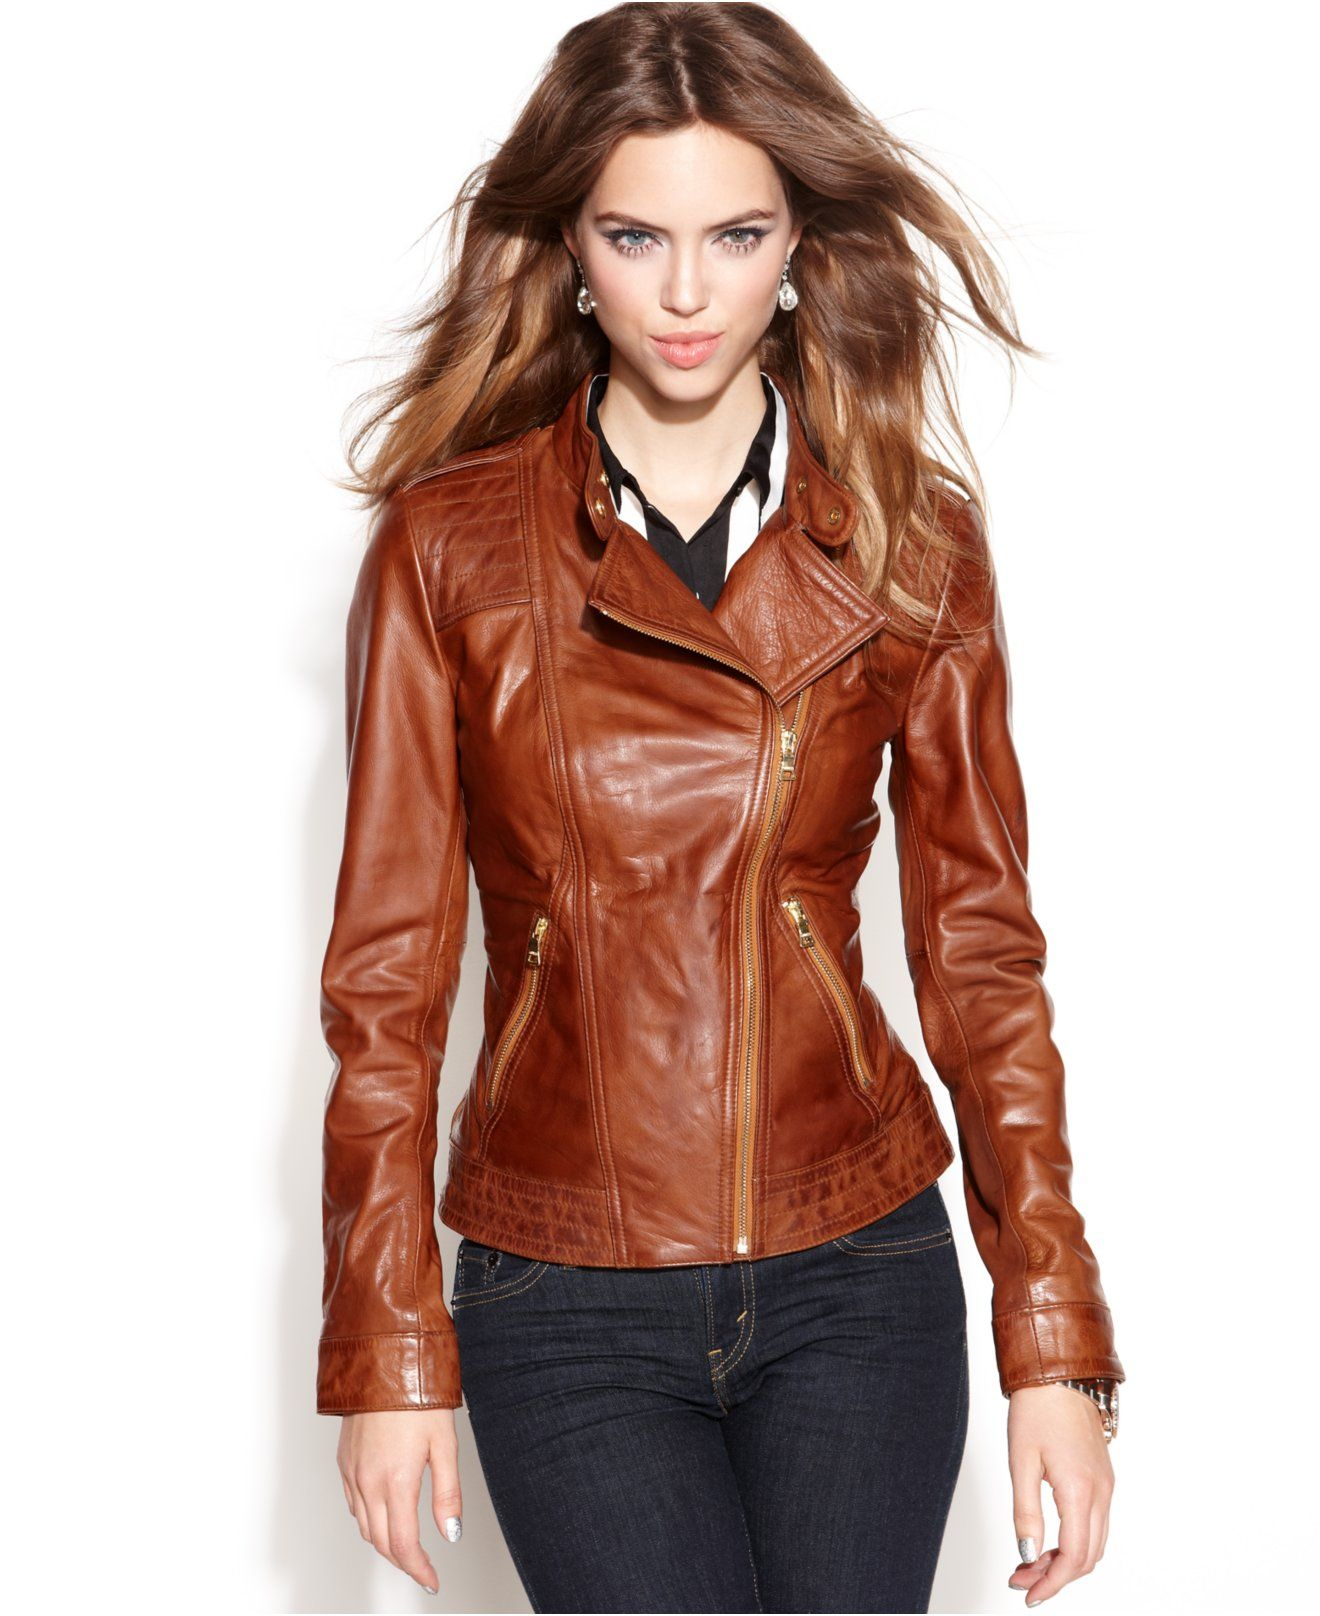 Zara Womens Faux Leather Jacket. You can purchase it on